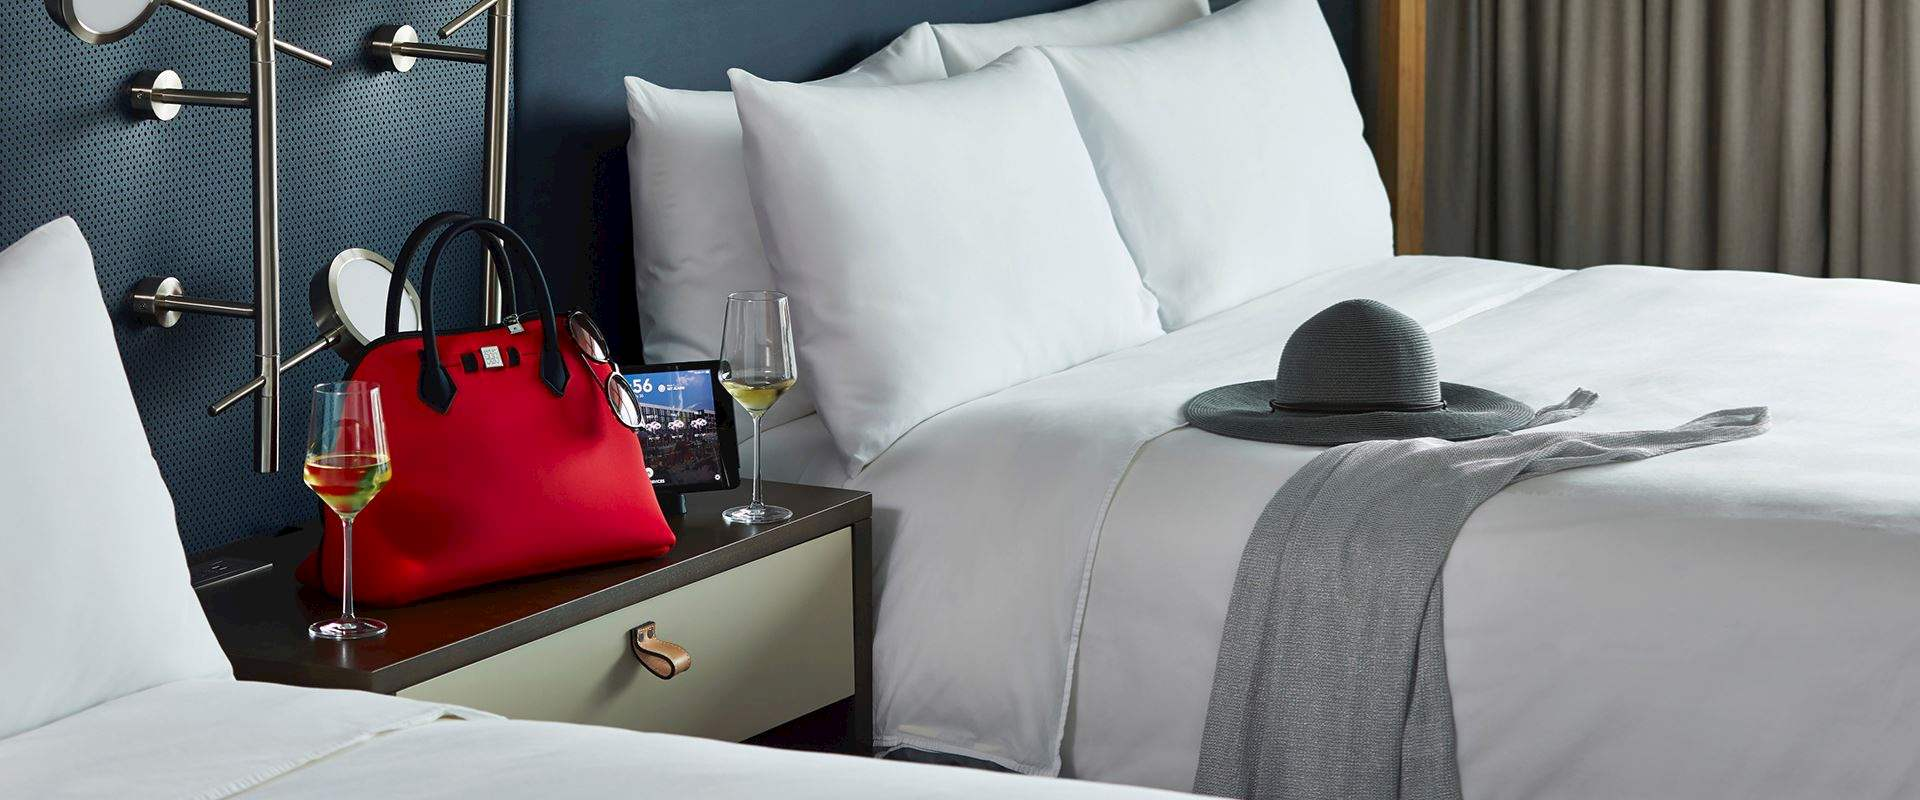 Luxury Rooms and Suites at The Daytona, Autograph Collection Hotel